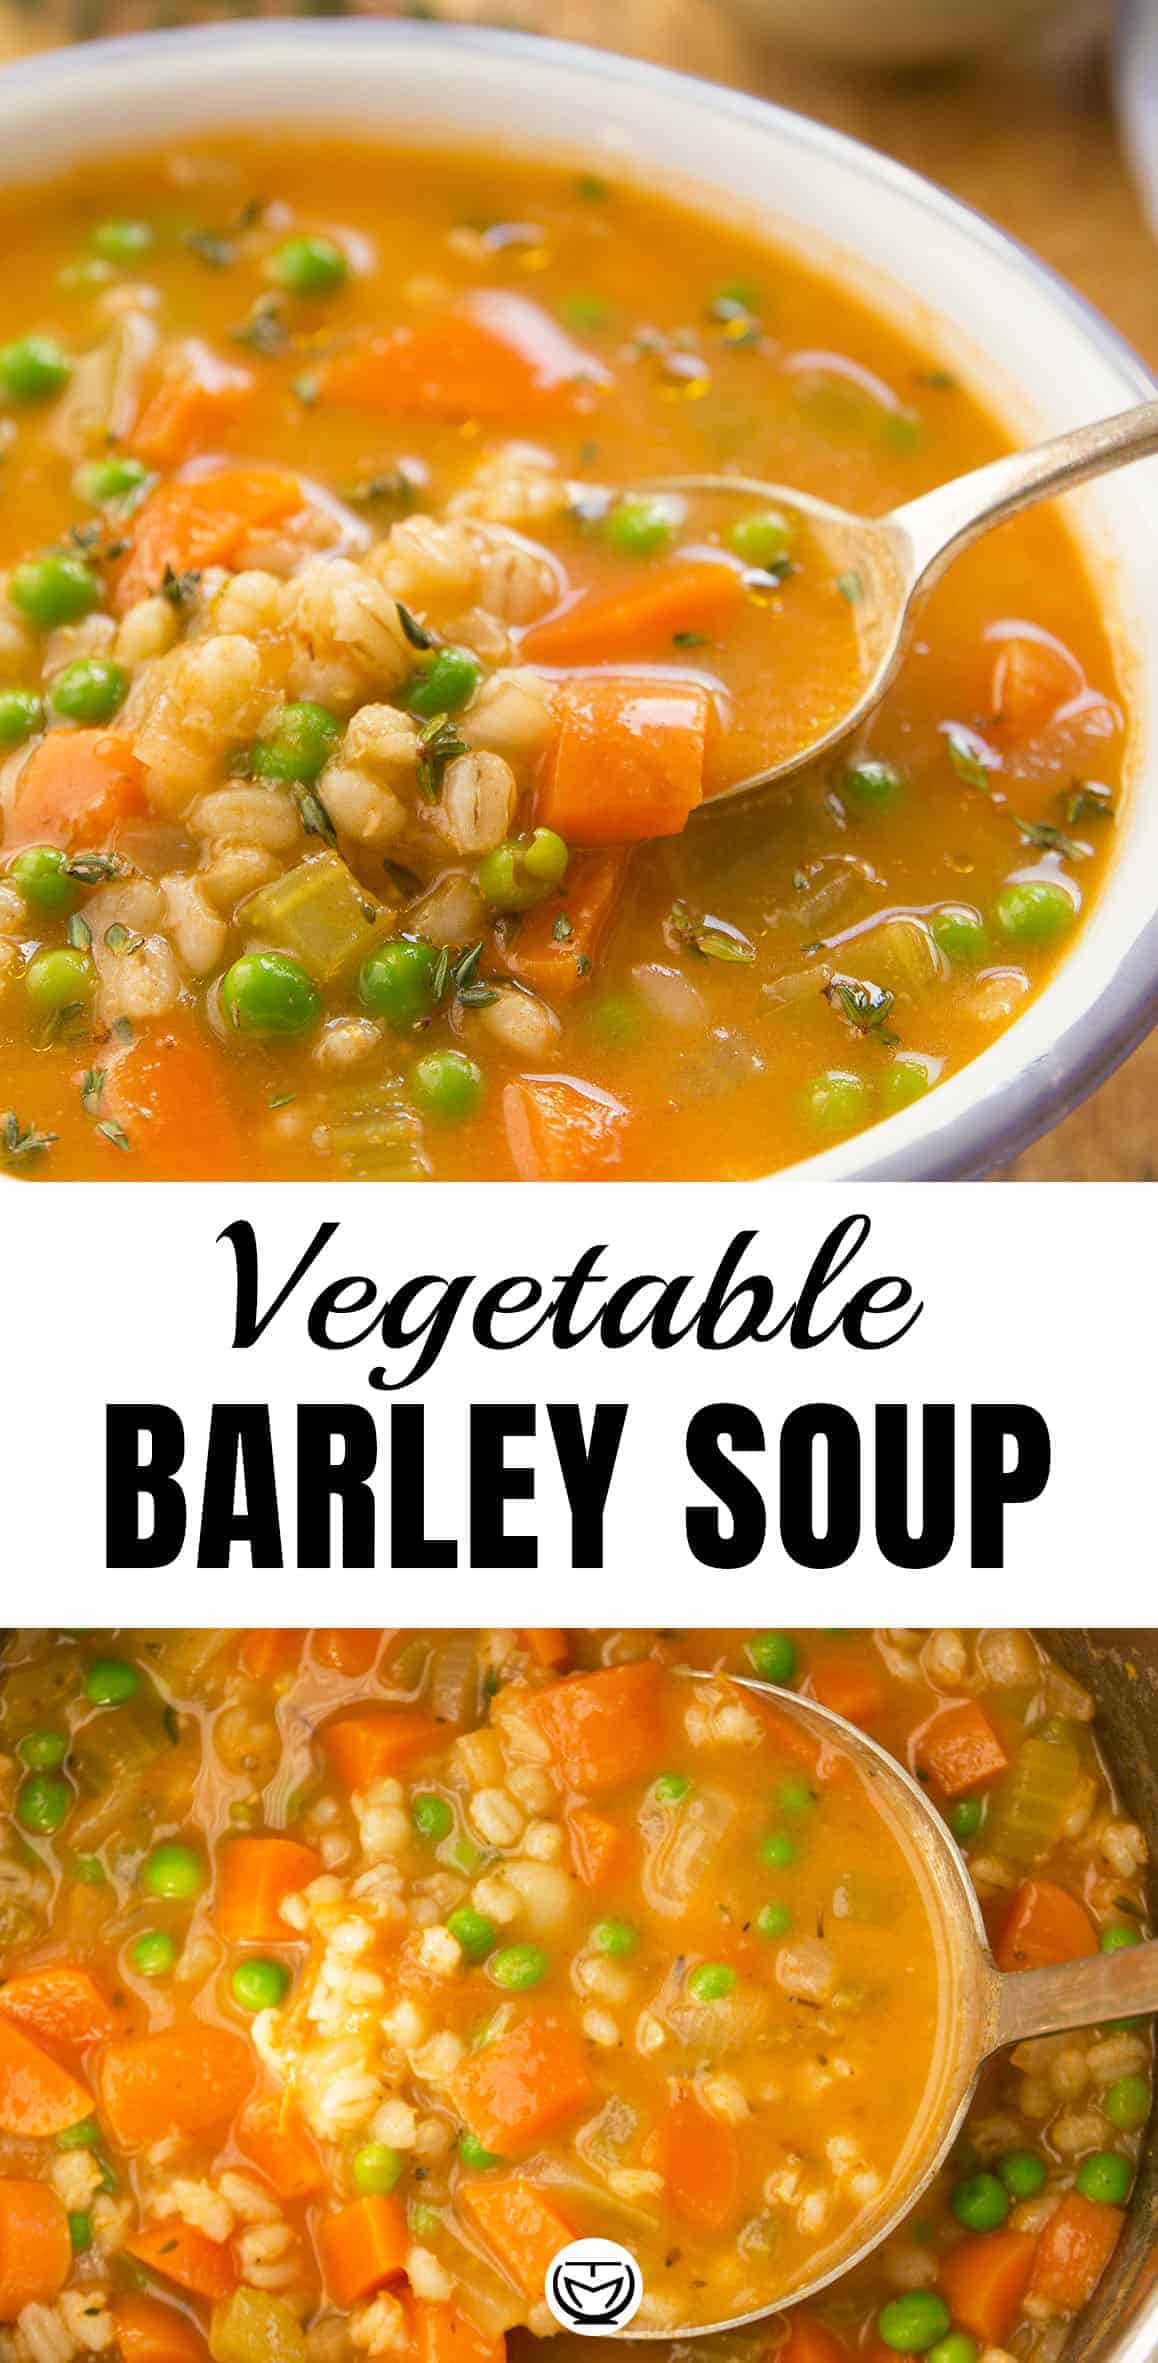 Let the homey flavors speak for themselves with thishearty and simply delicious vegetable barley soup. It's easy to make, healthy, packed with vegetables, and you can't stop eating it! #barleysoup #barleyrecipe #souprecipes #souprecipeshealthy #veganrecipes #vegetarianrecipes